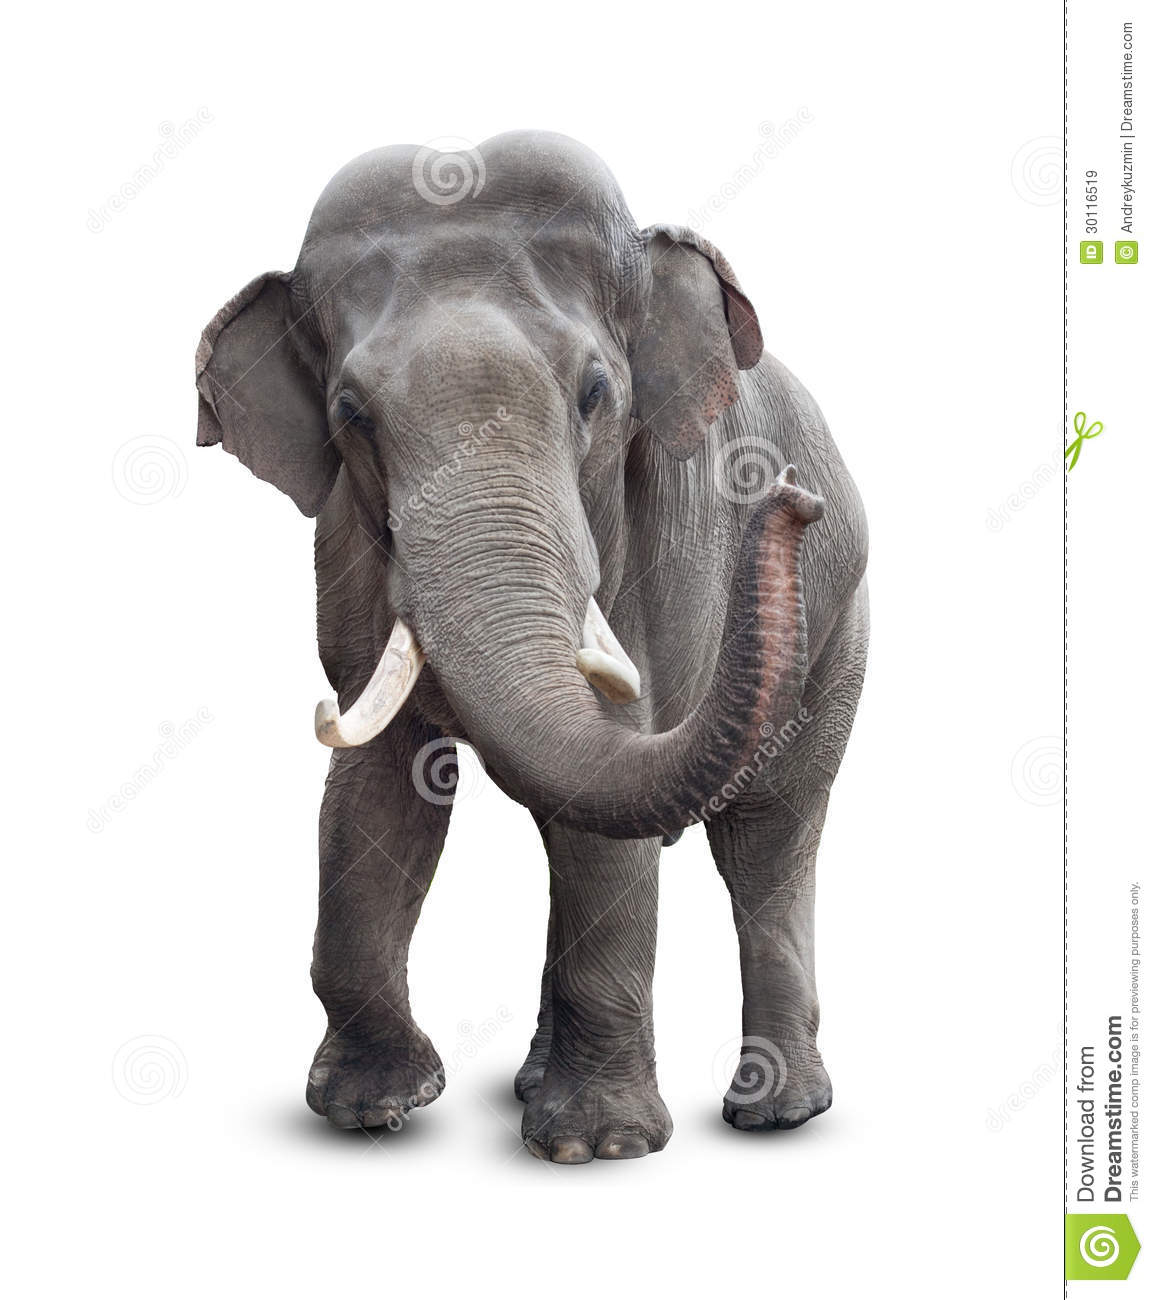 Elephant front view with clipping path royalty free stock images image 30116519 - Image elephant ...